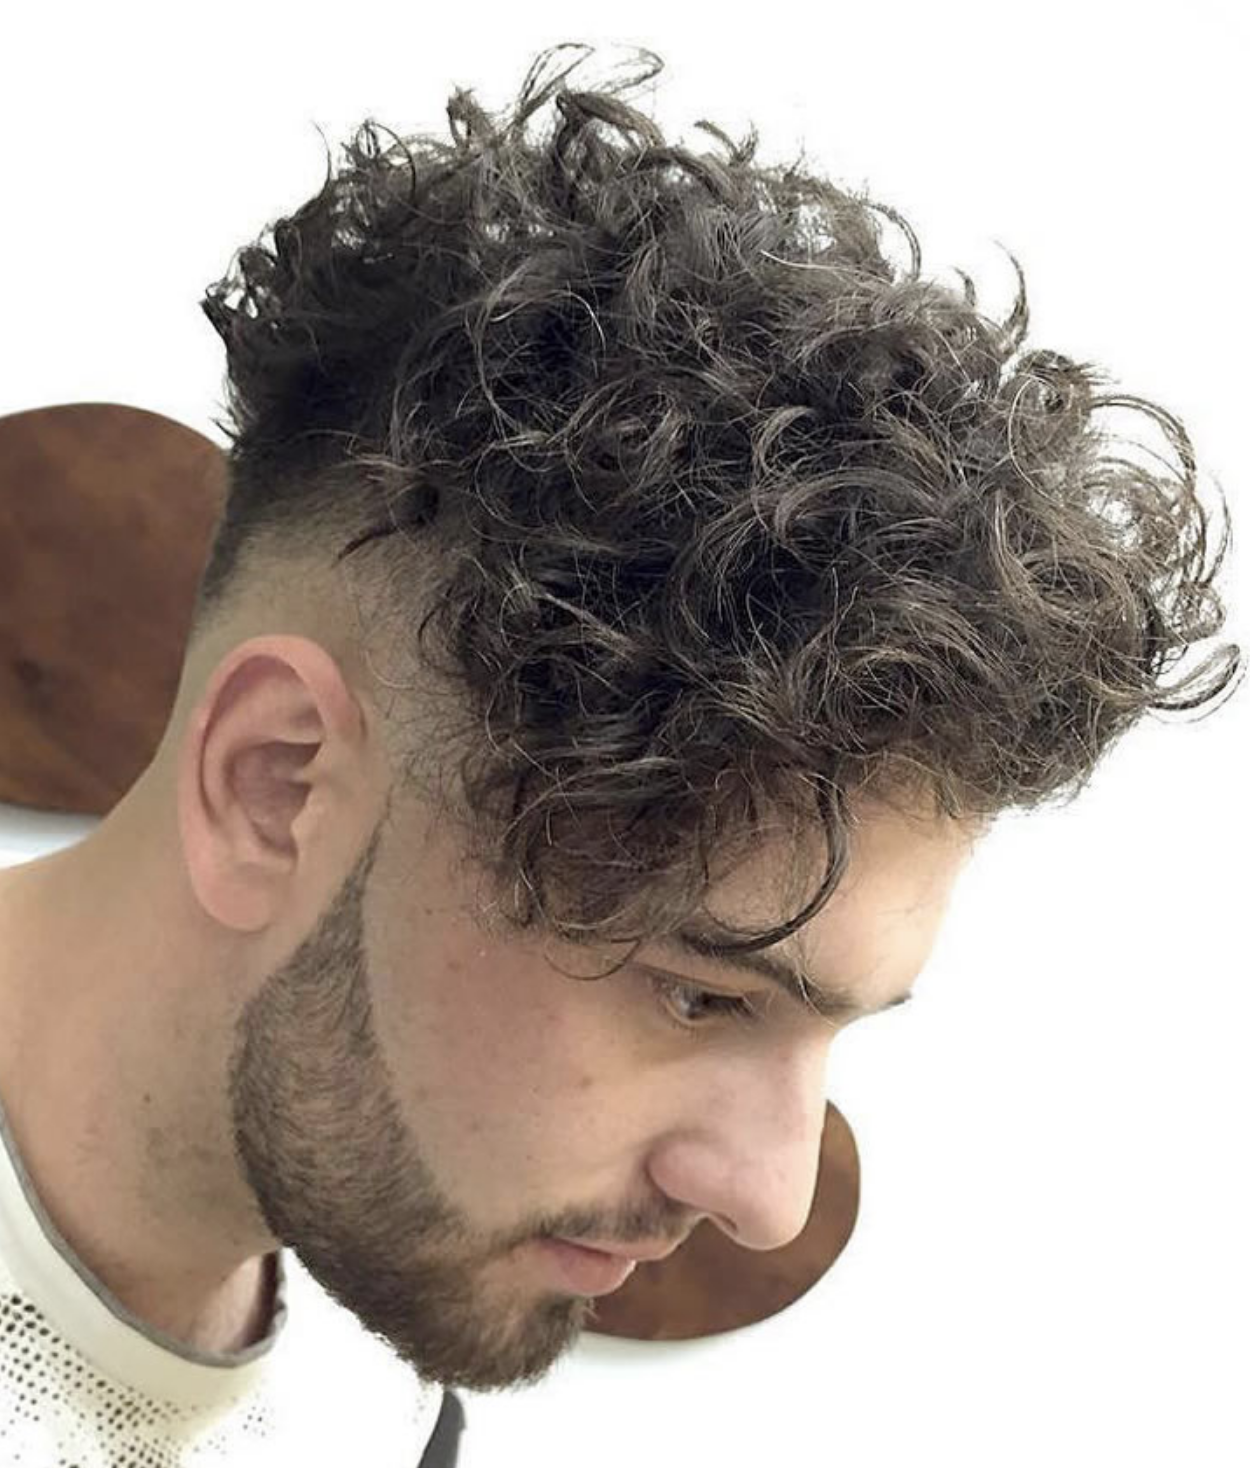 Modern Curly Hairstyle And Haircuts For Men That Will Trend In 2019 Keywords 2019 Curly Hair For Undercut Curly Hair Curly Hair Styles Long Hair Styles Men